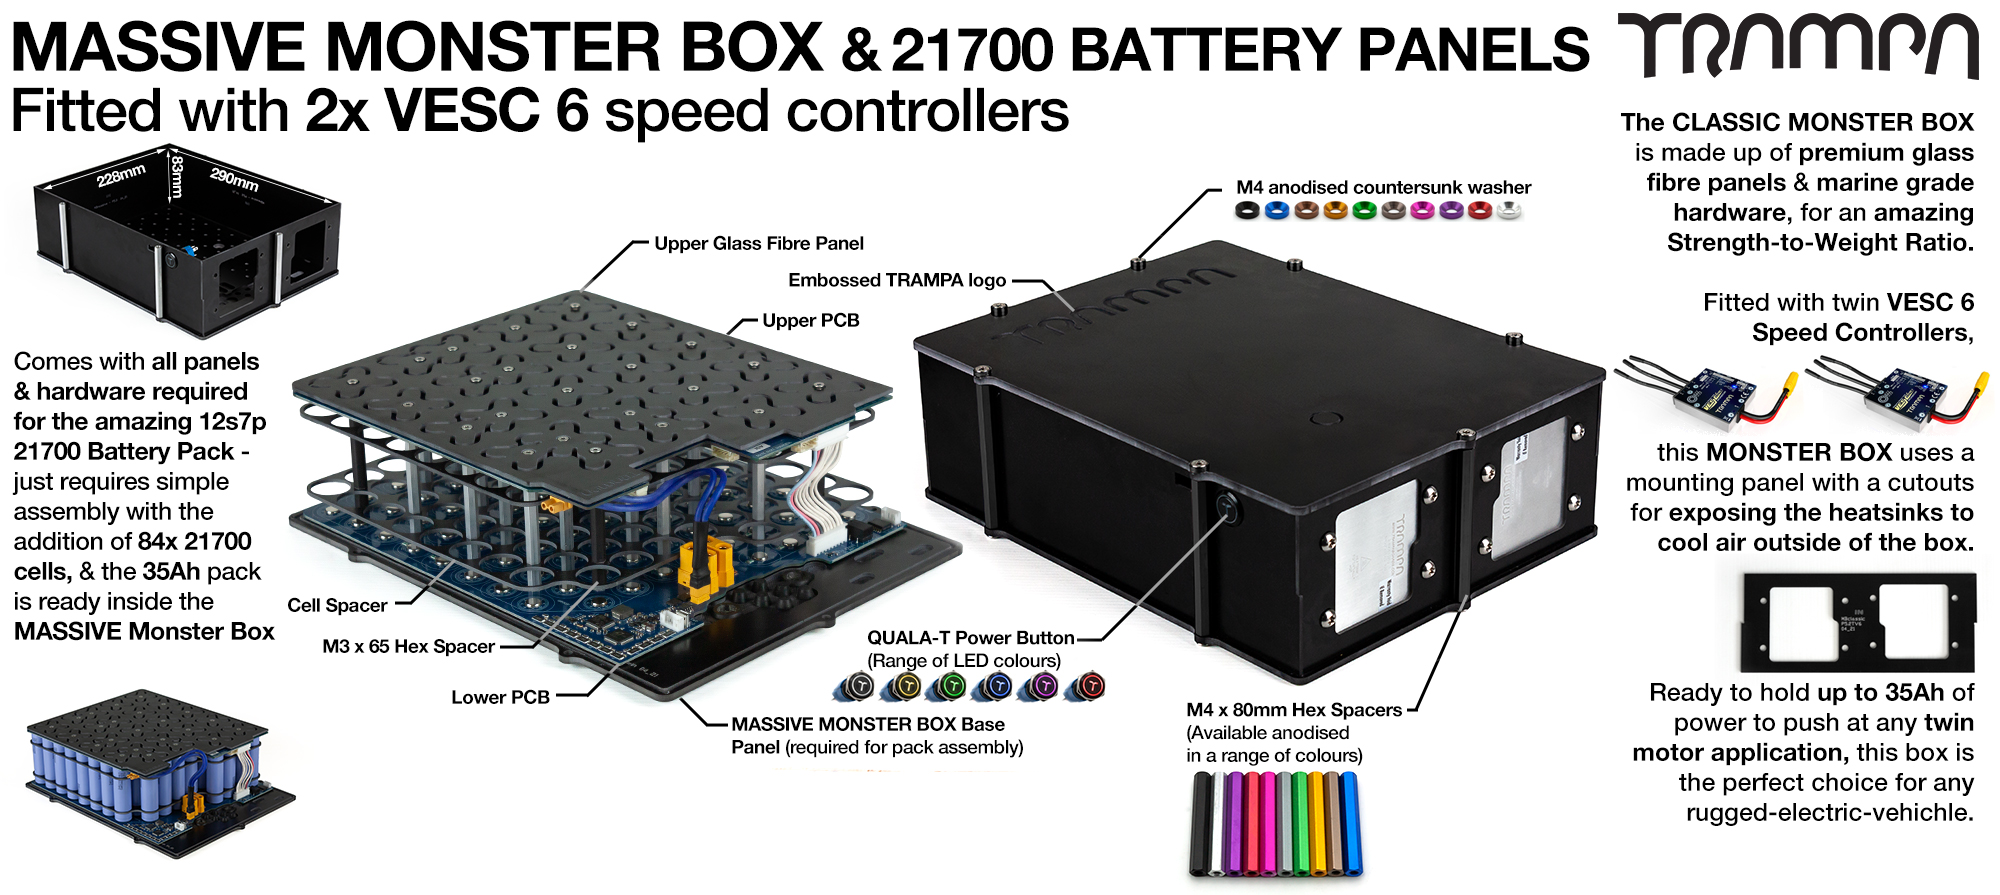 21700 MASSIVE MONSTER Box with 21700 PCB Pack with 2x VESC 6 - NO CELLS